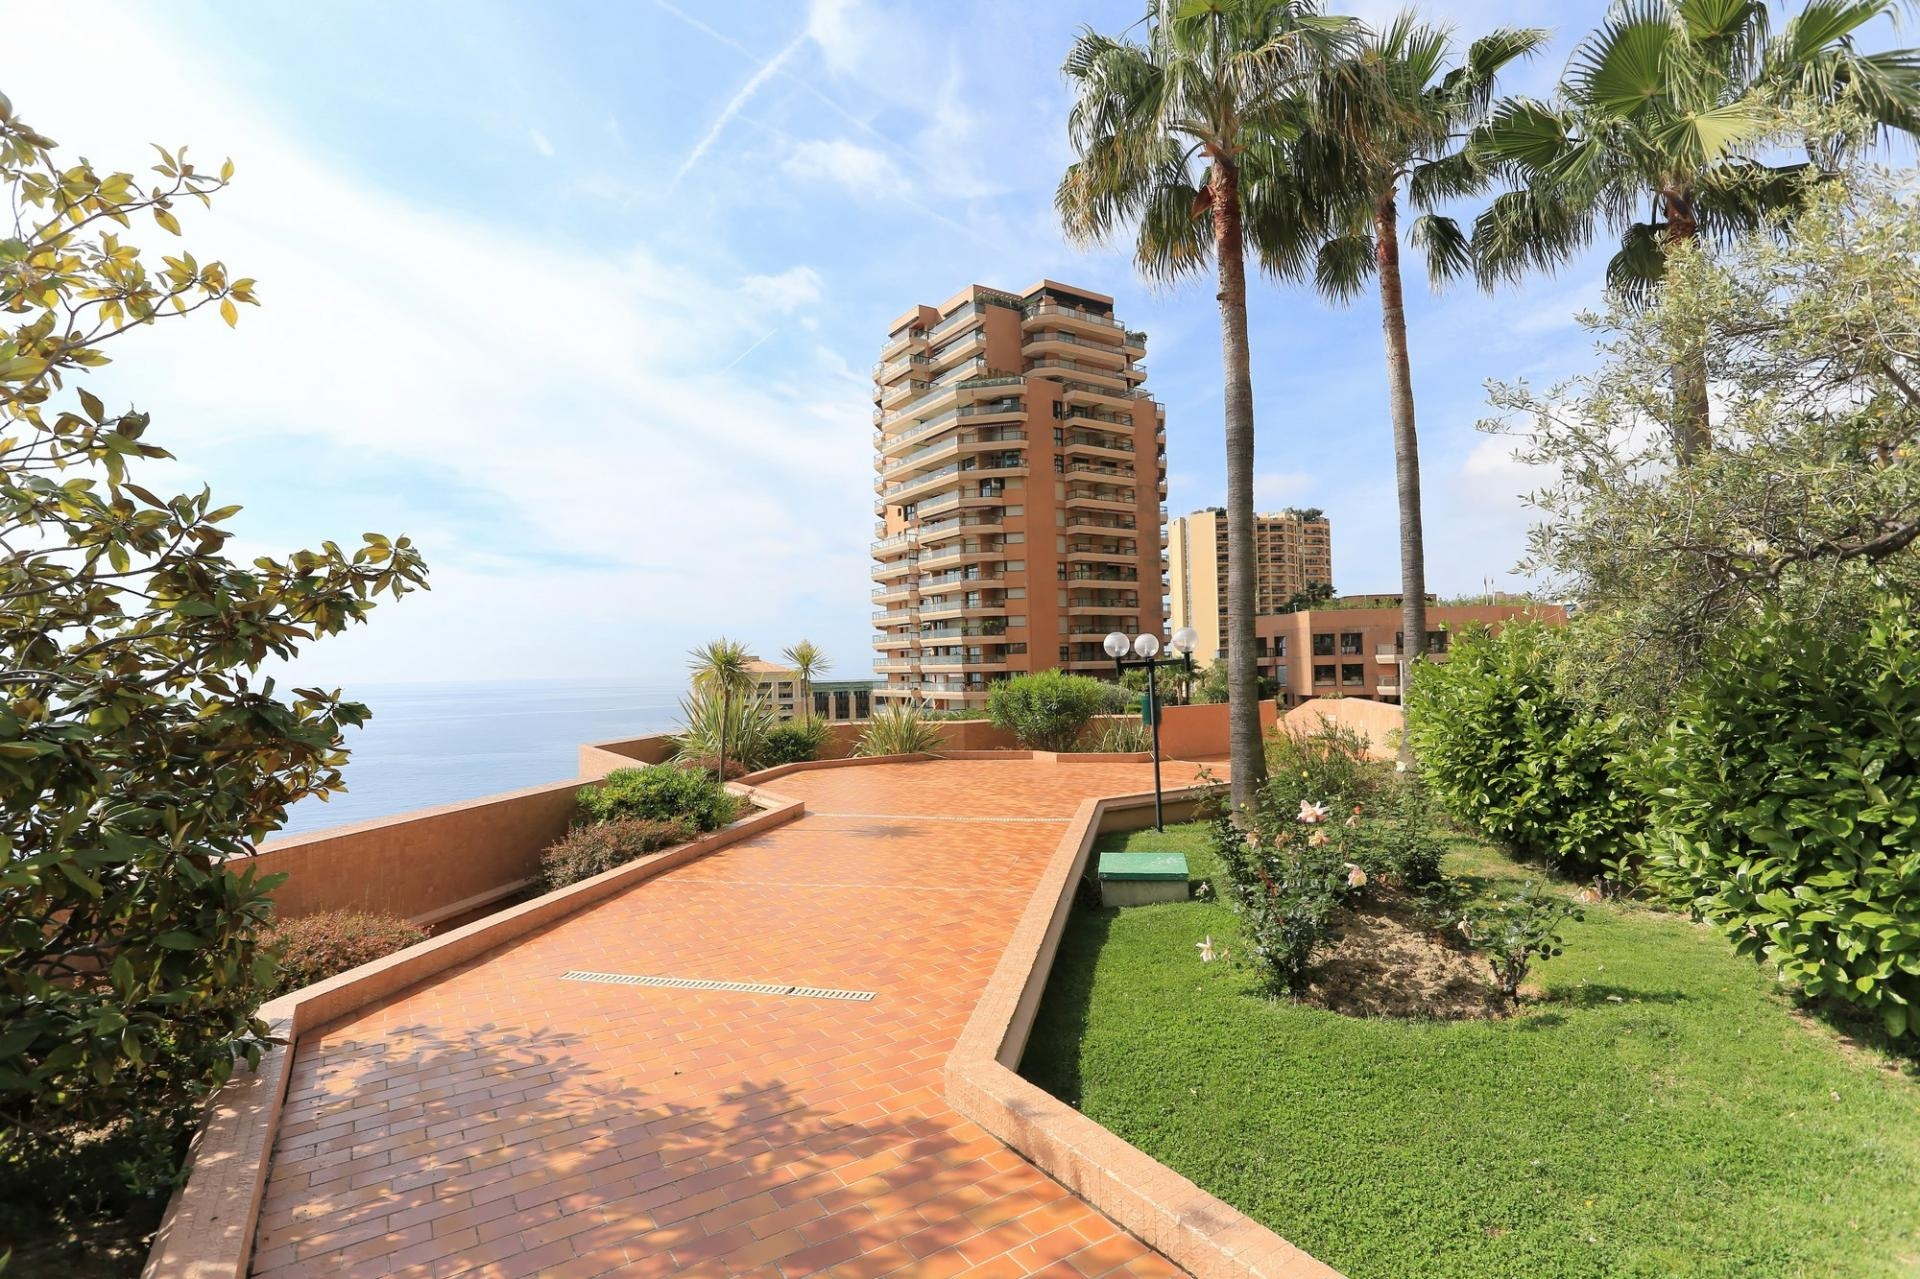 monte carlo sun office with sea view offices for sale in monaco